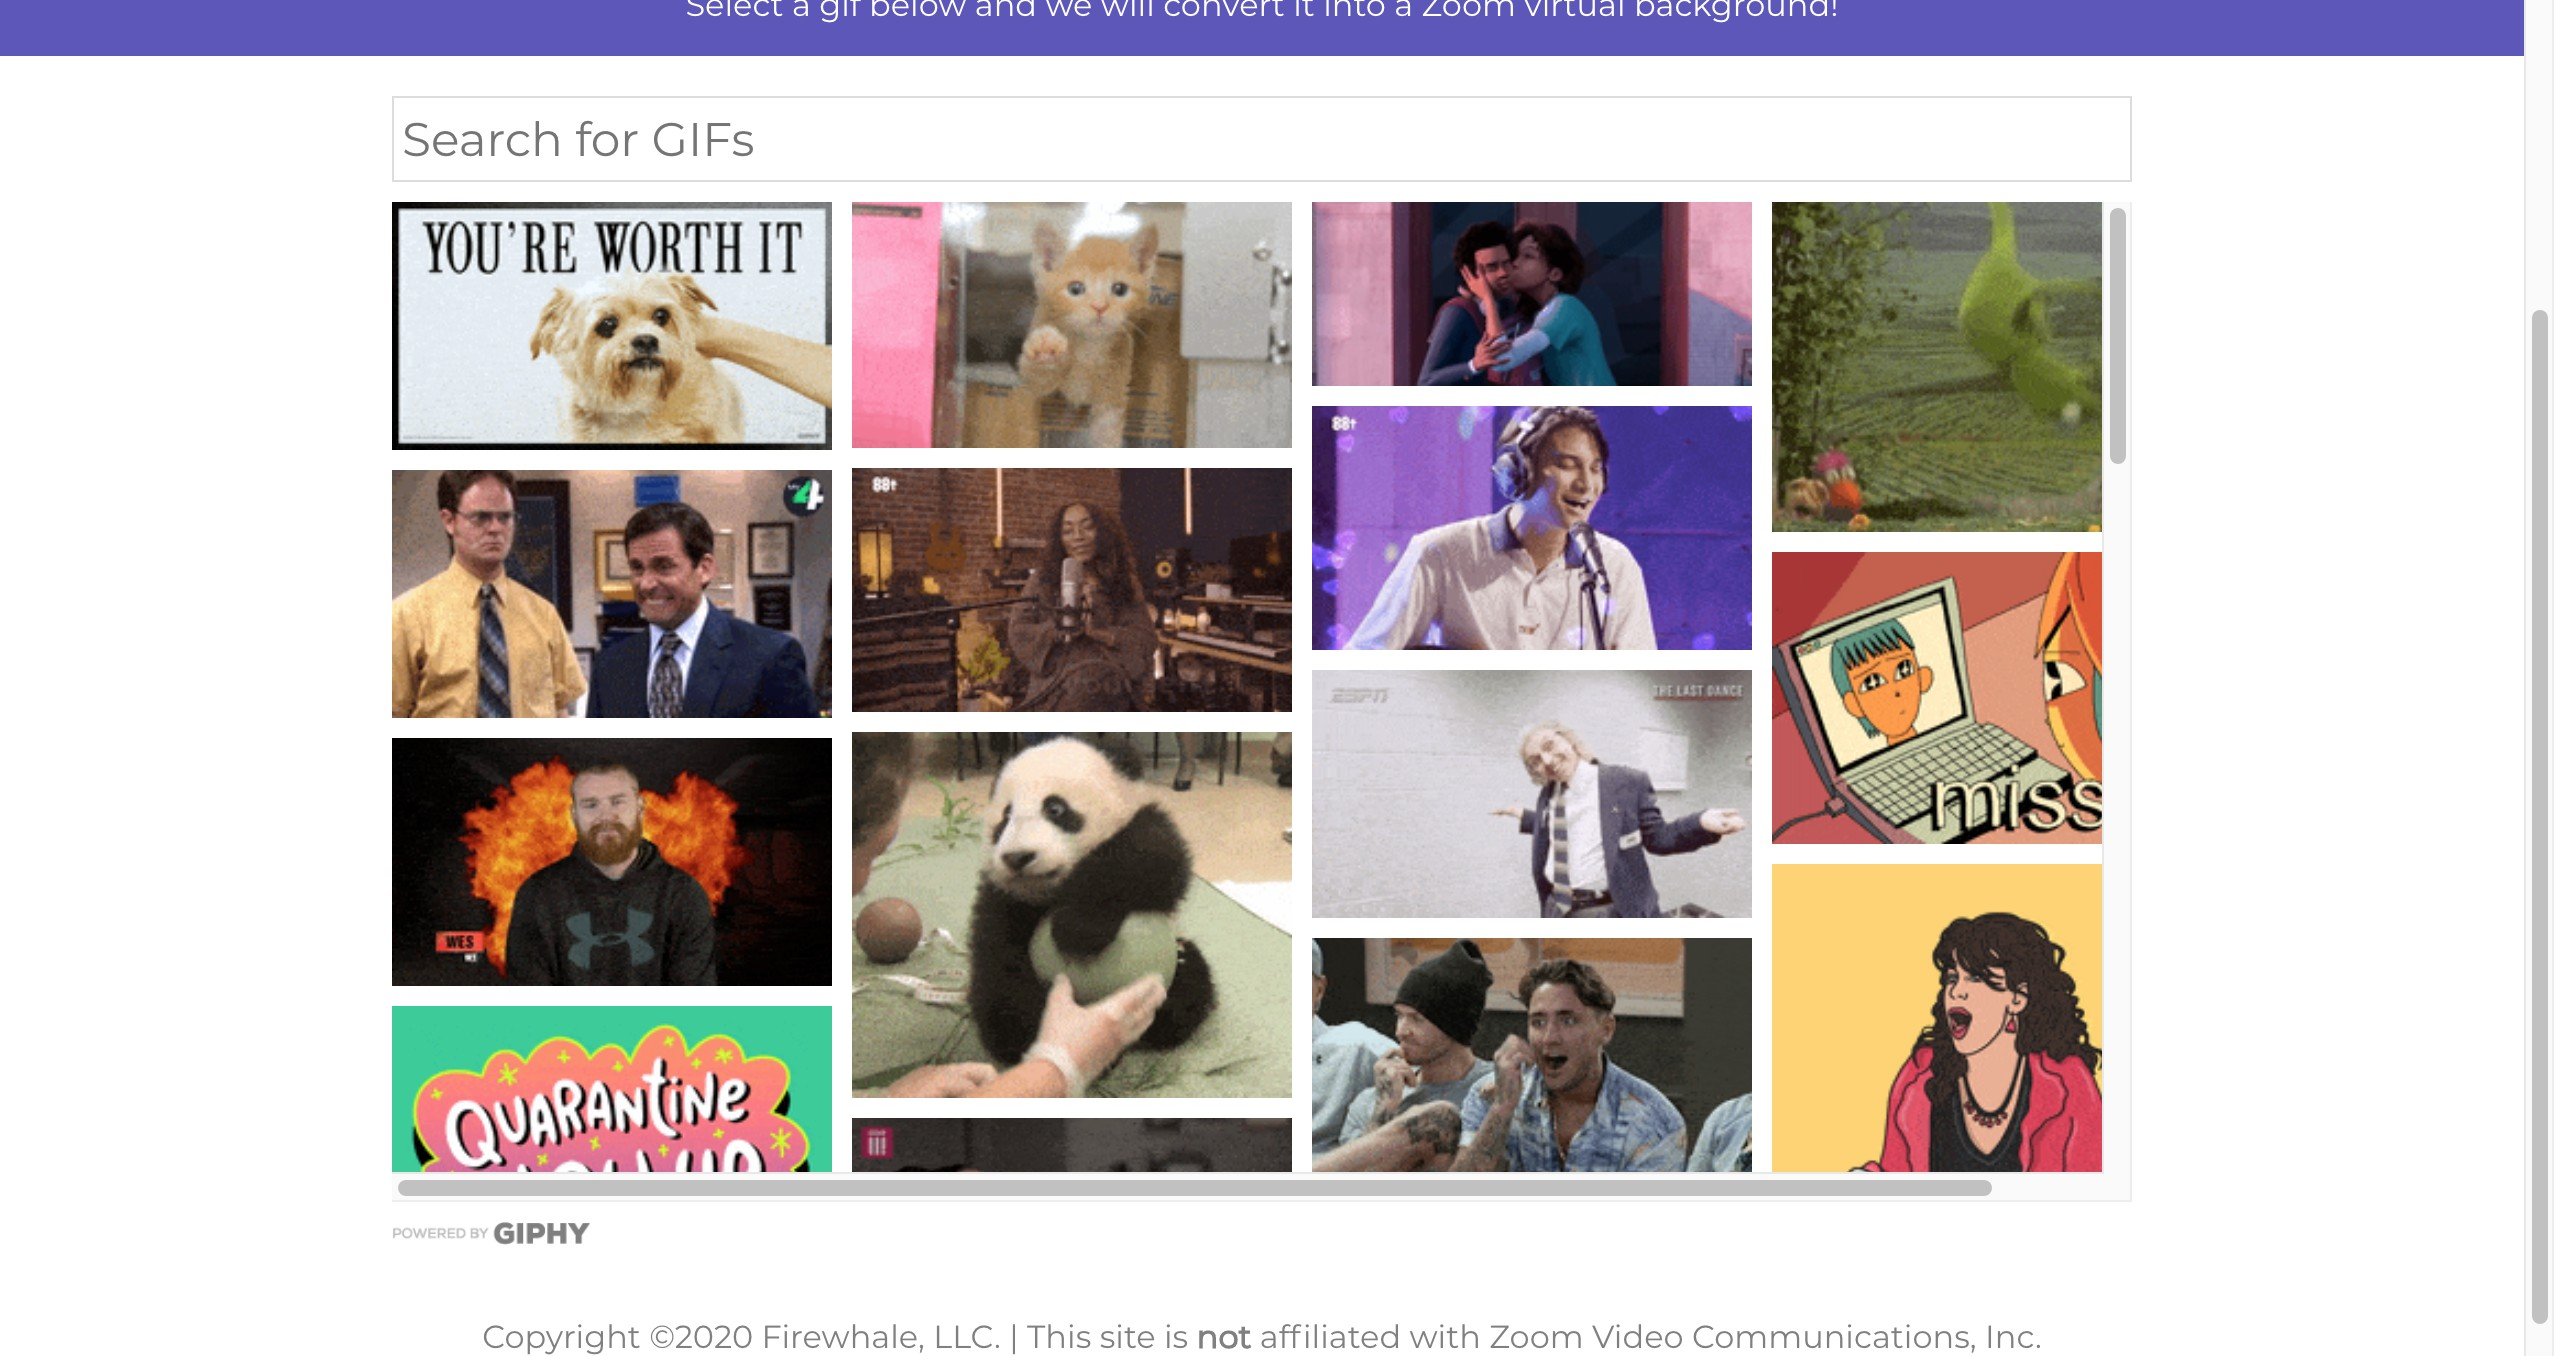 Gif2Zoom - Convert gif images to zoom virtual backgrounds.